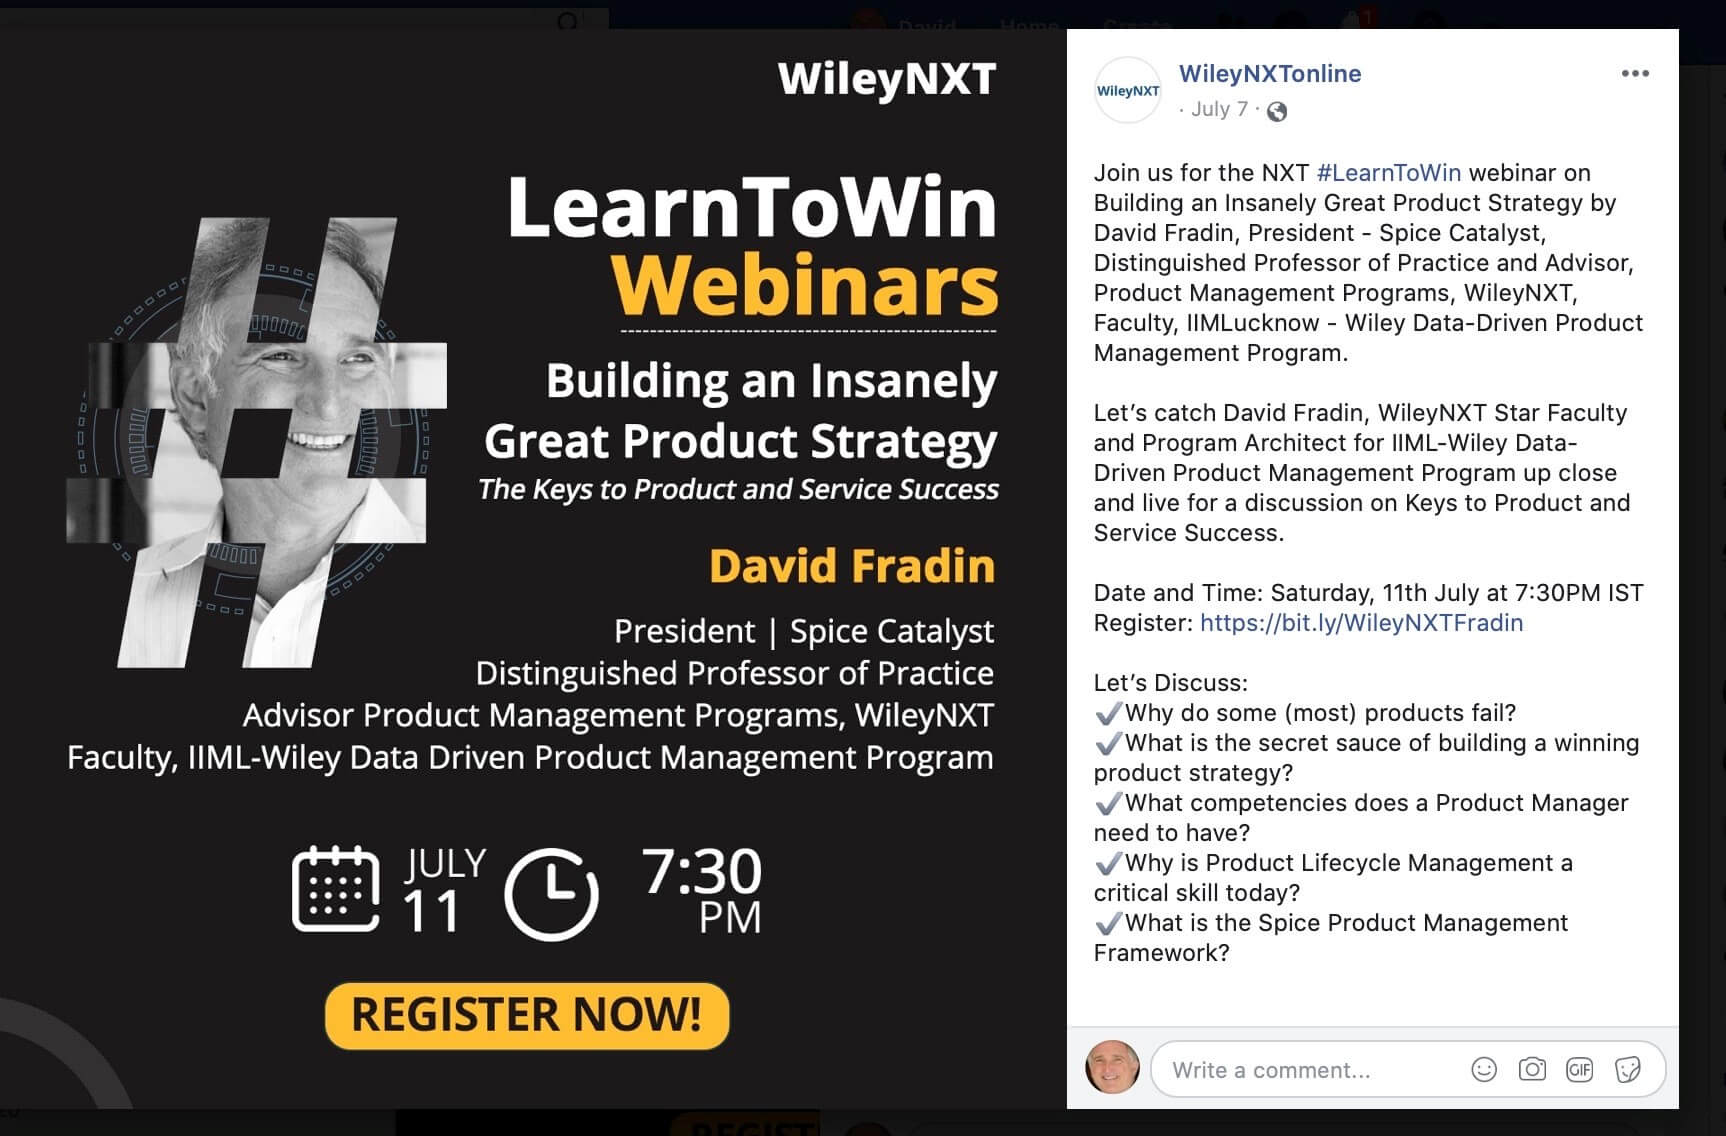 WileyNXT Webinar on Building an Insanely Great Product Strategy Tag